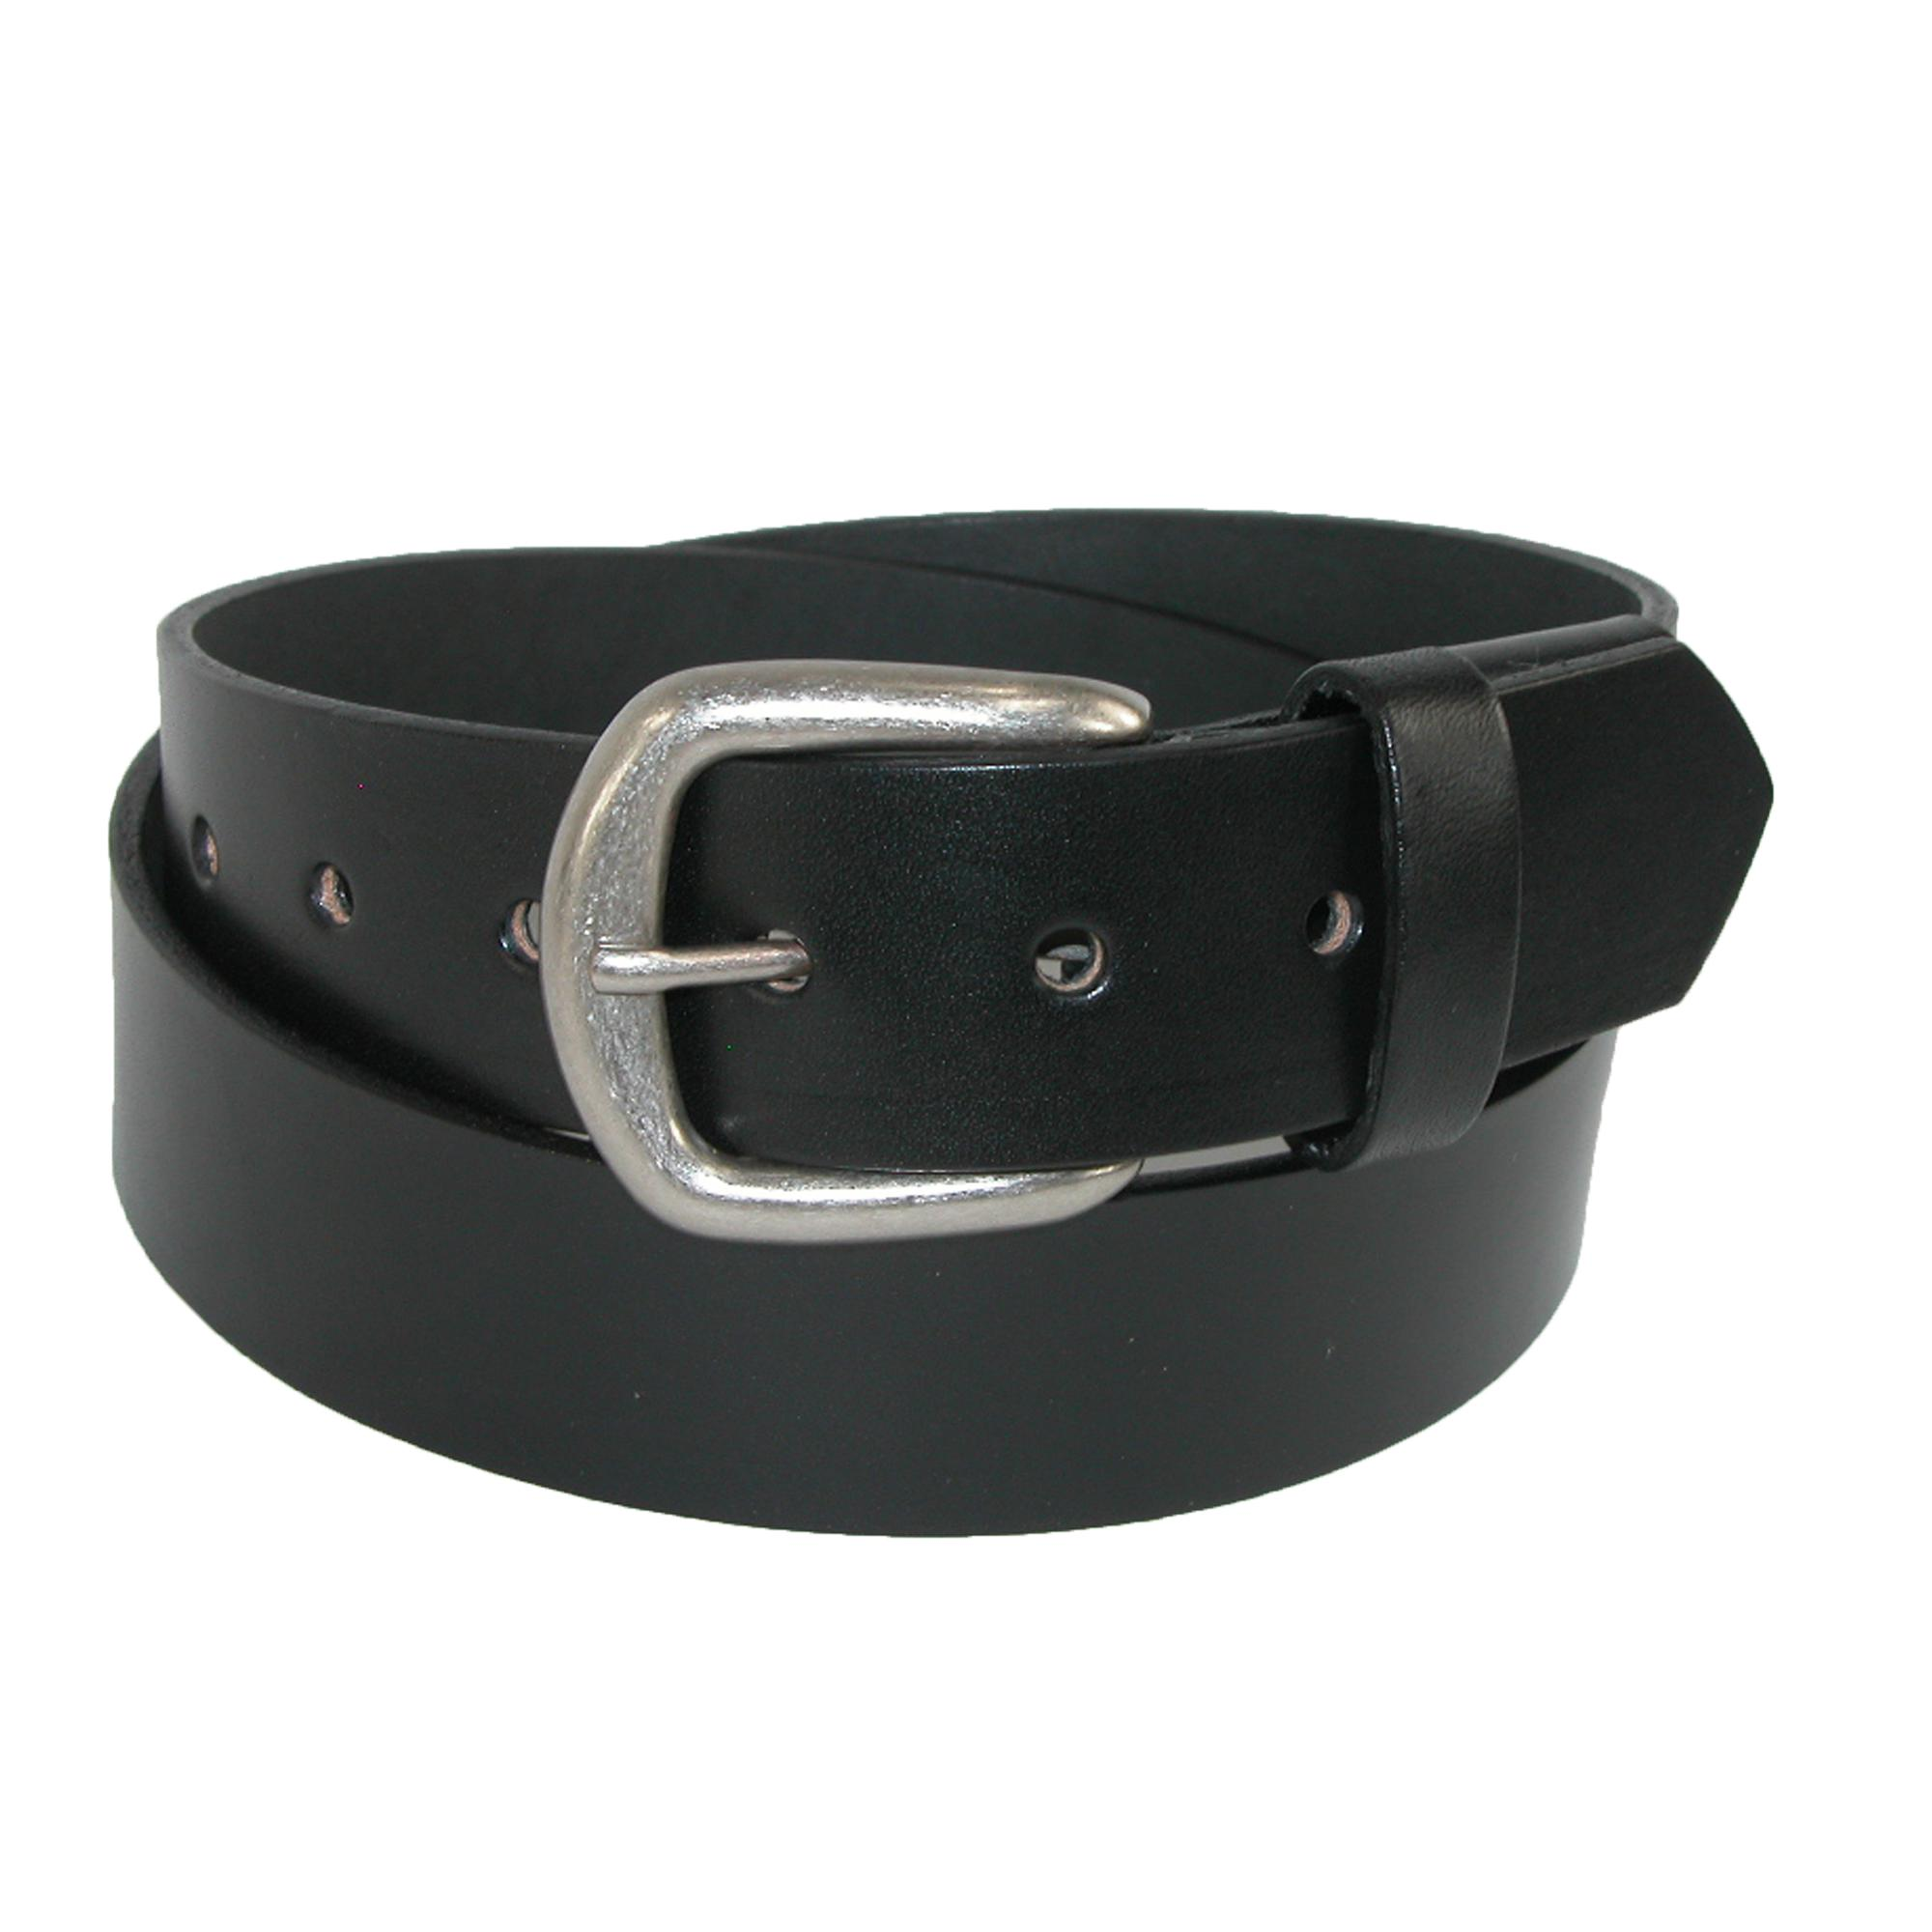 Boston Leather Men's Lincoln Leather Bridle Belt With Hidden Elastic